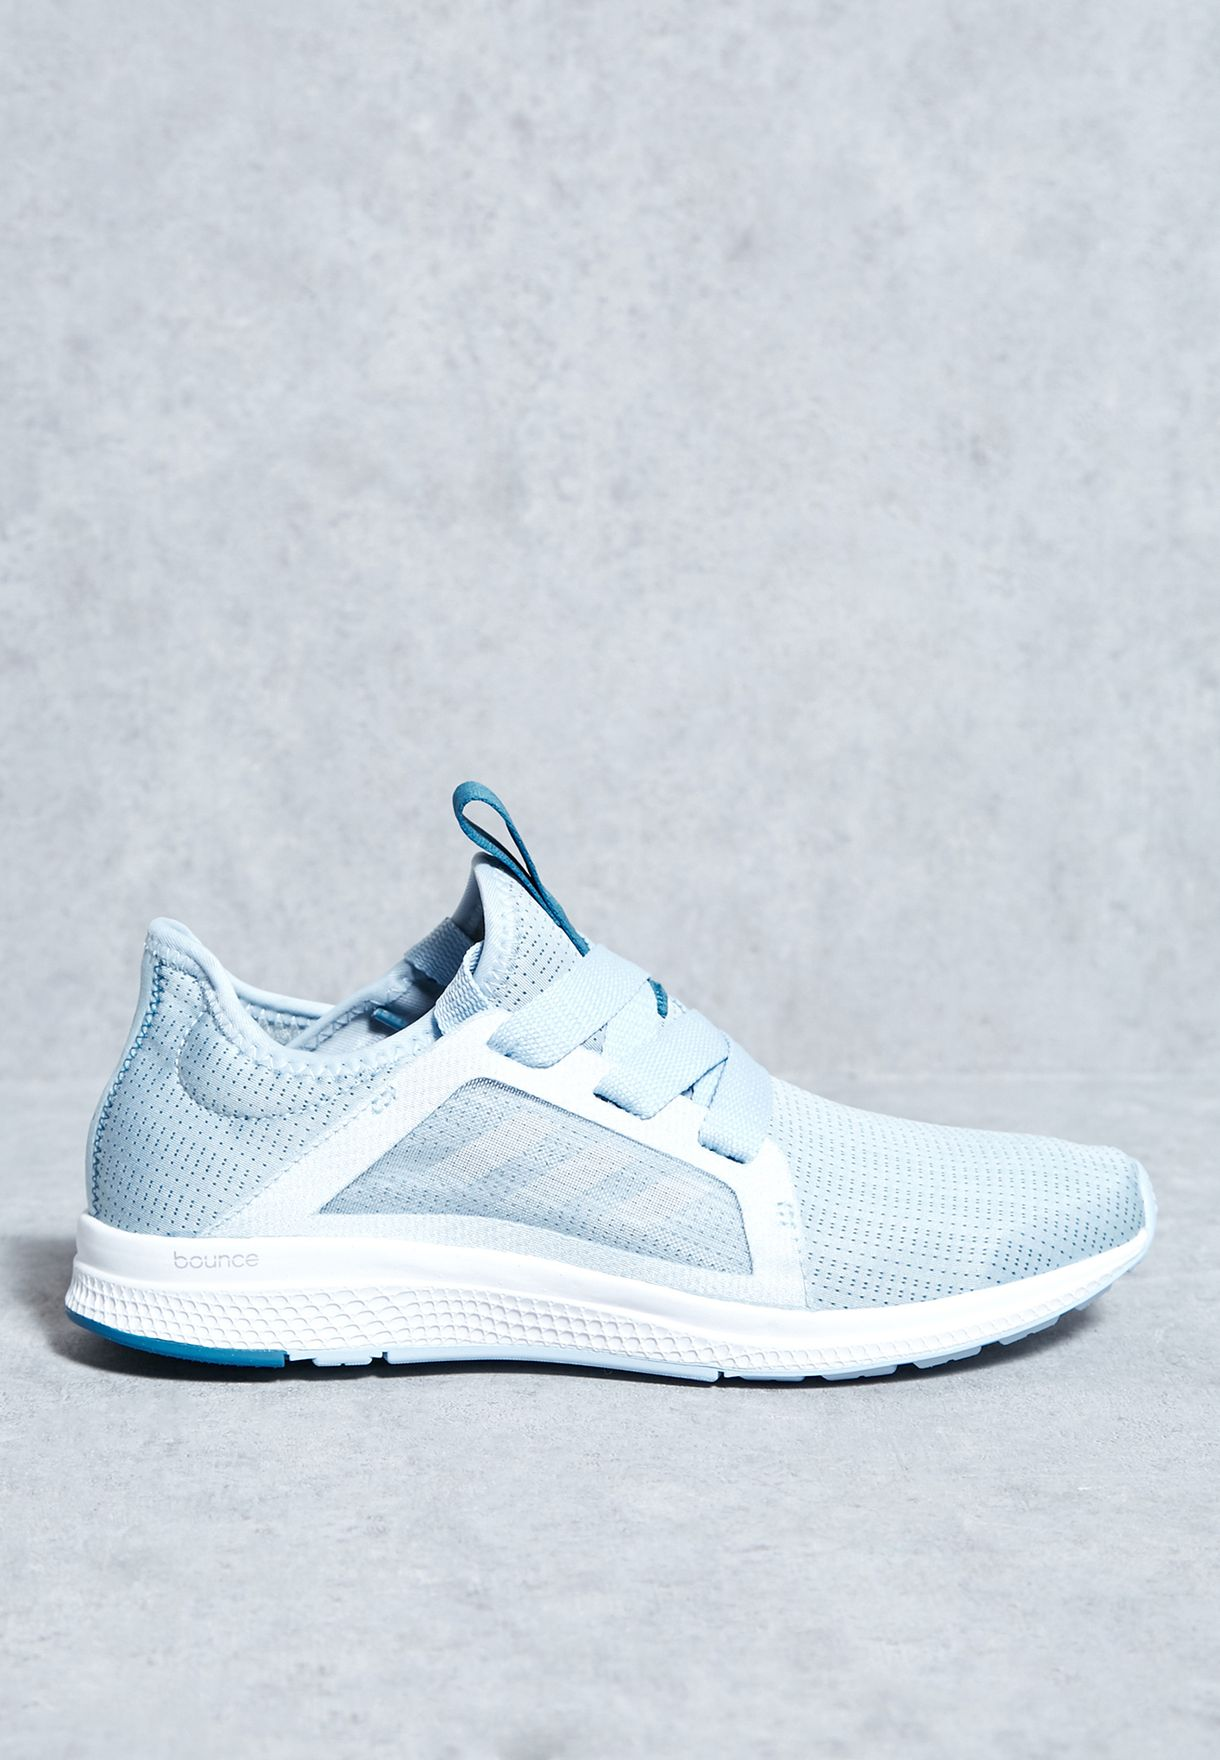 6b7cbed7b Shop adidas blue Edge Lux B49629 for Women in Qatar - AD476SH78QPD